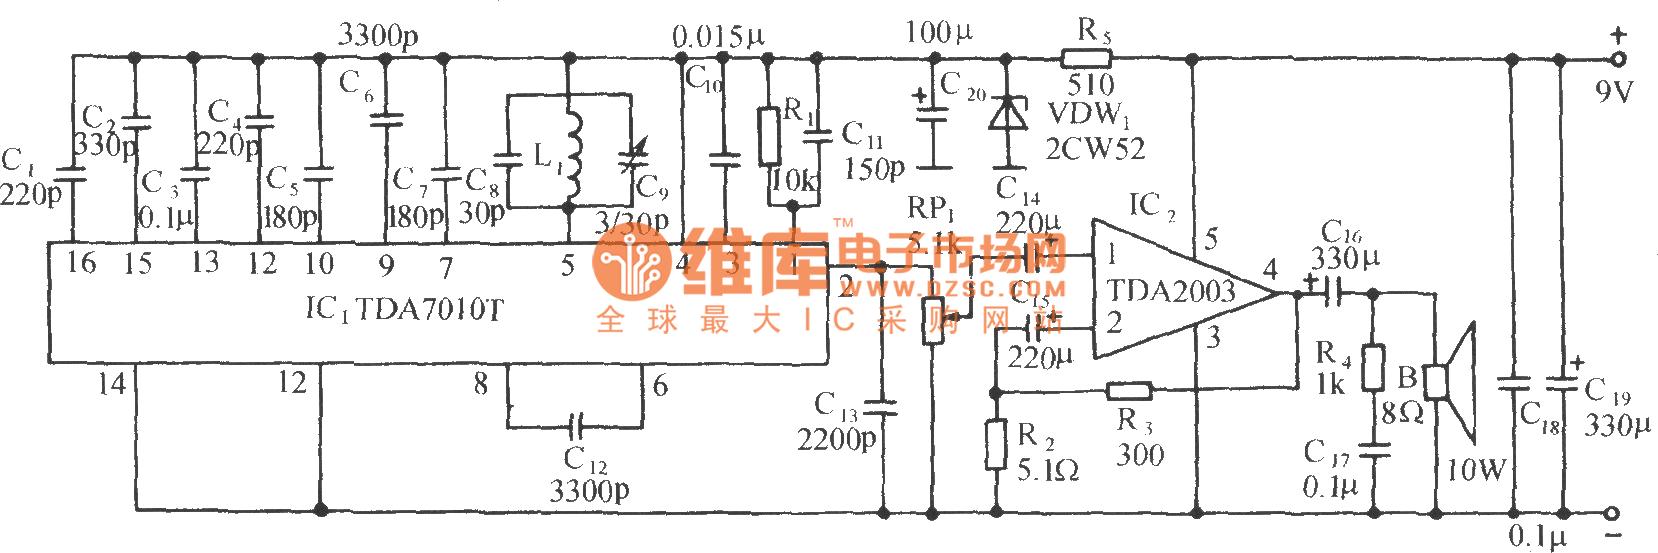 Livestock Guardrail Disconnection Alarm Wireless Fm Receiver Circuit Digitaltheremin Basiccircuit Diagram Seekiccom